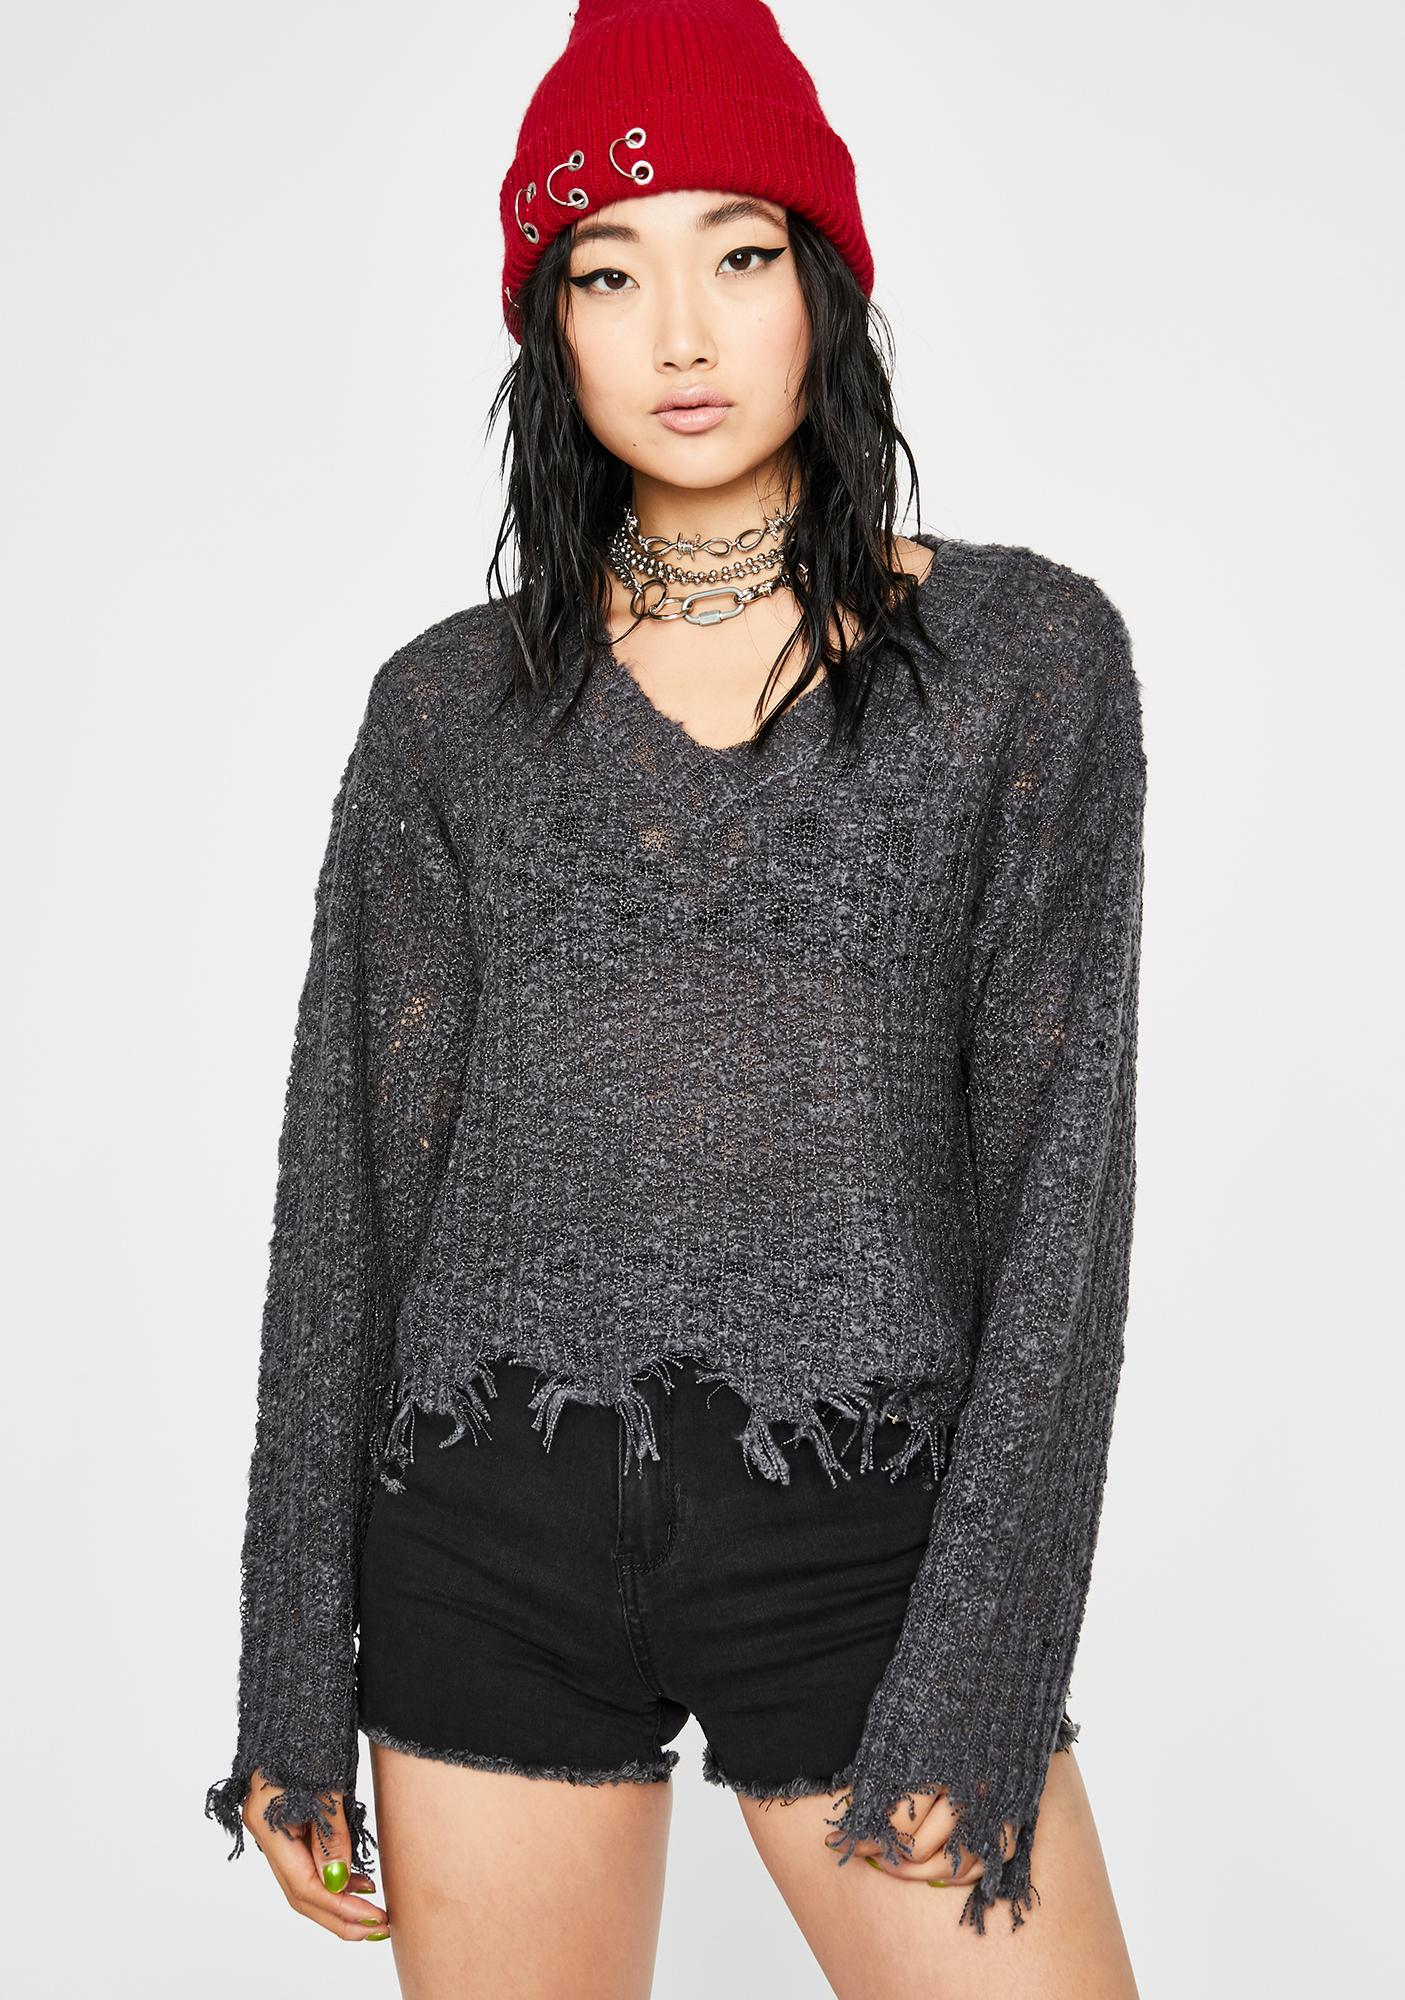 Charcoal Stress Test Knit Sweater